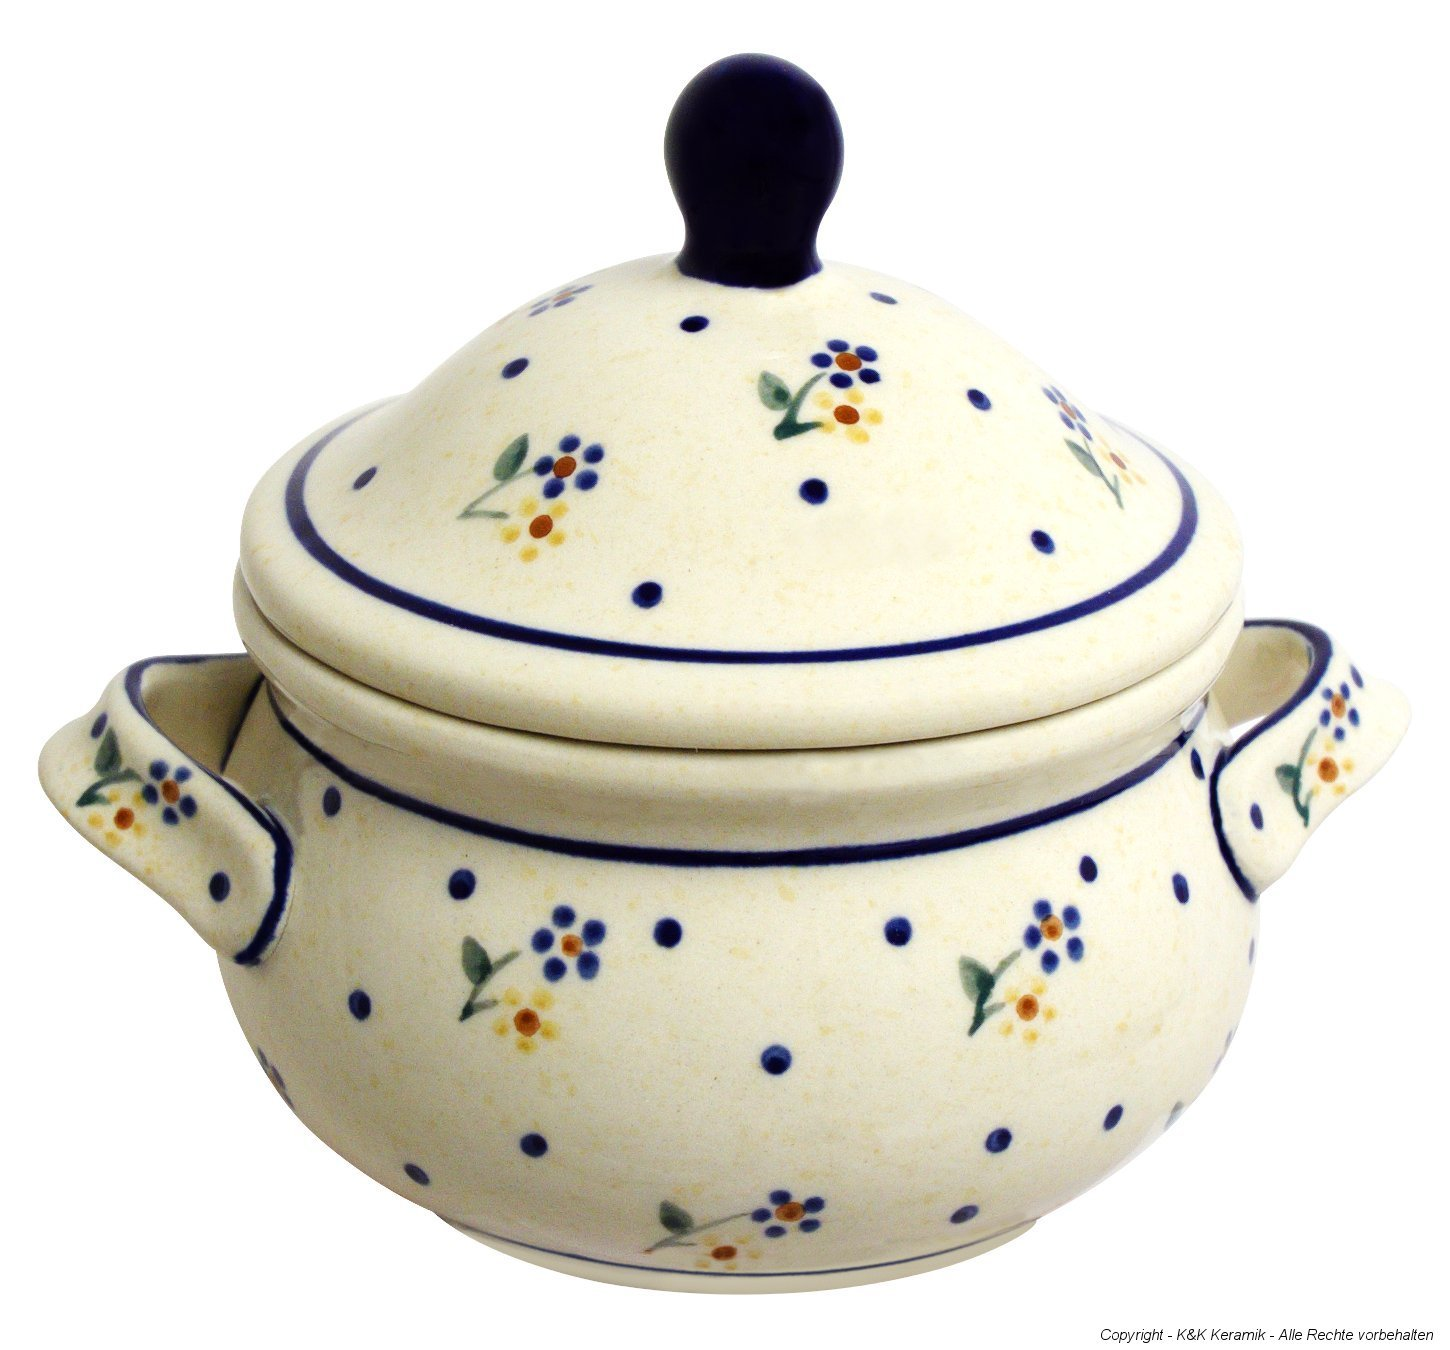 Hand-Decorated Polish Pottery Marmelade Pot Wax Pot/0.45 Litre Honey Pot Design Soup Mug 111